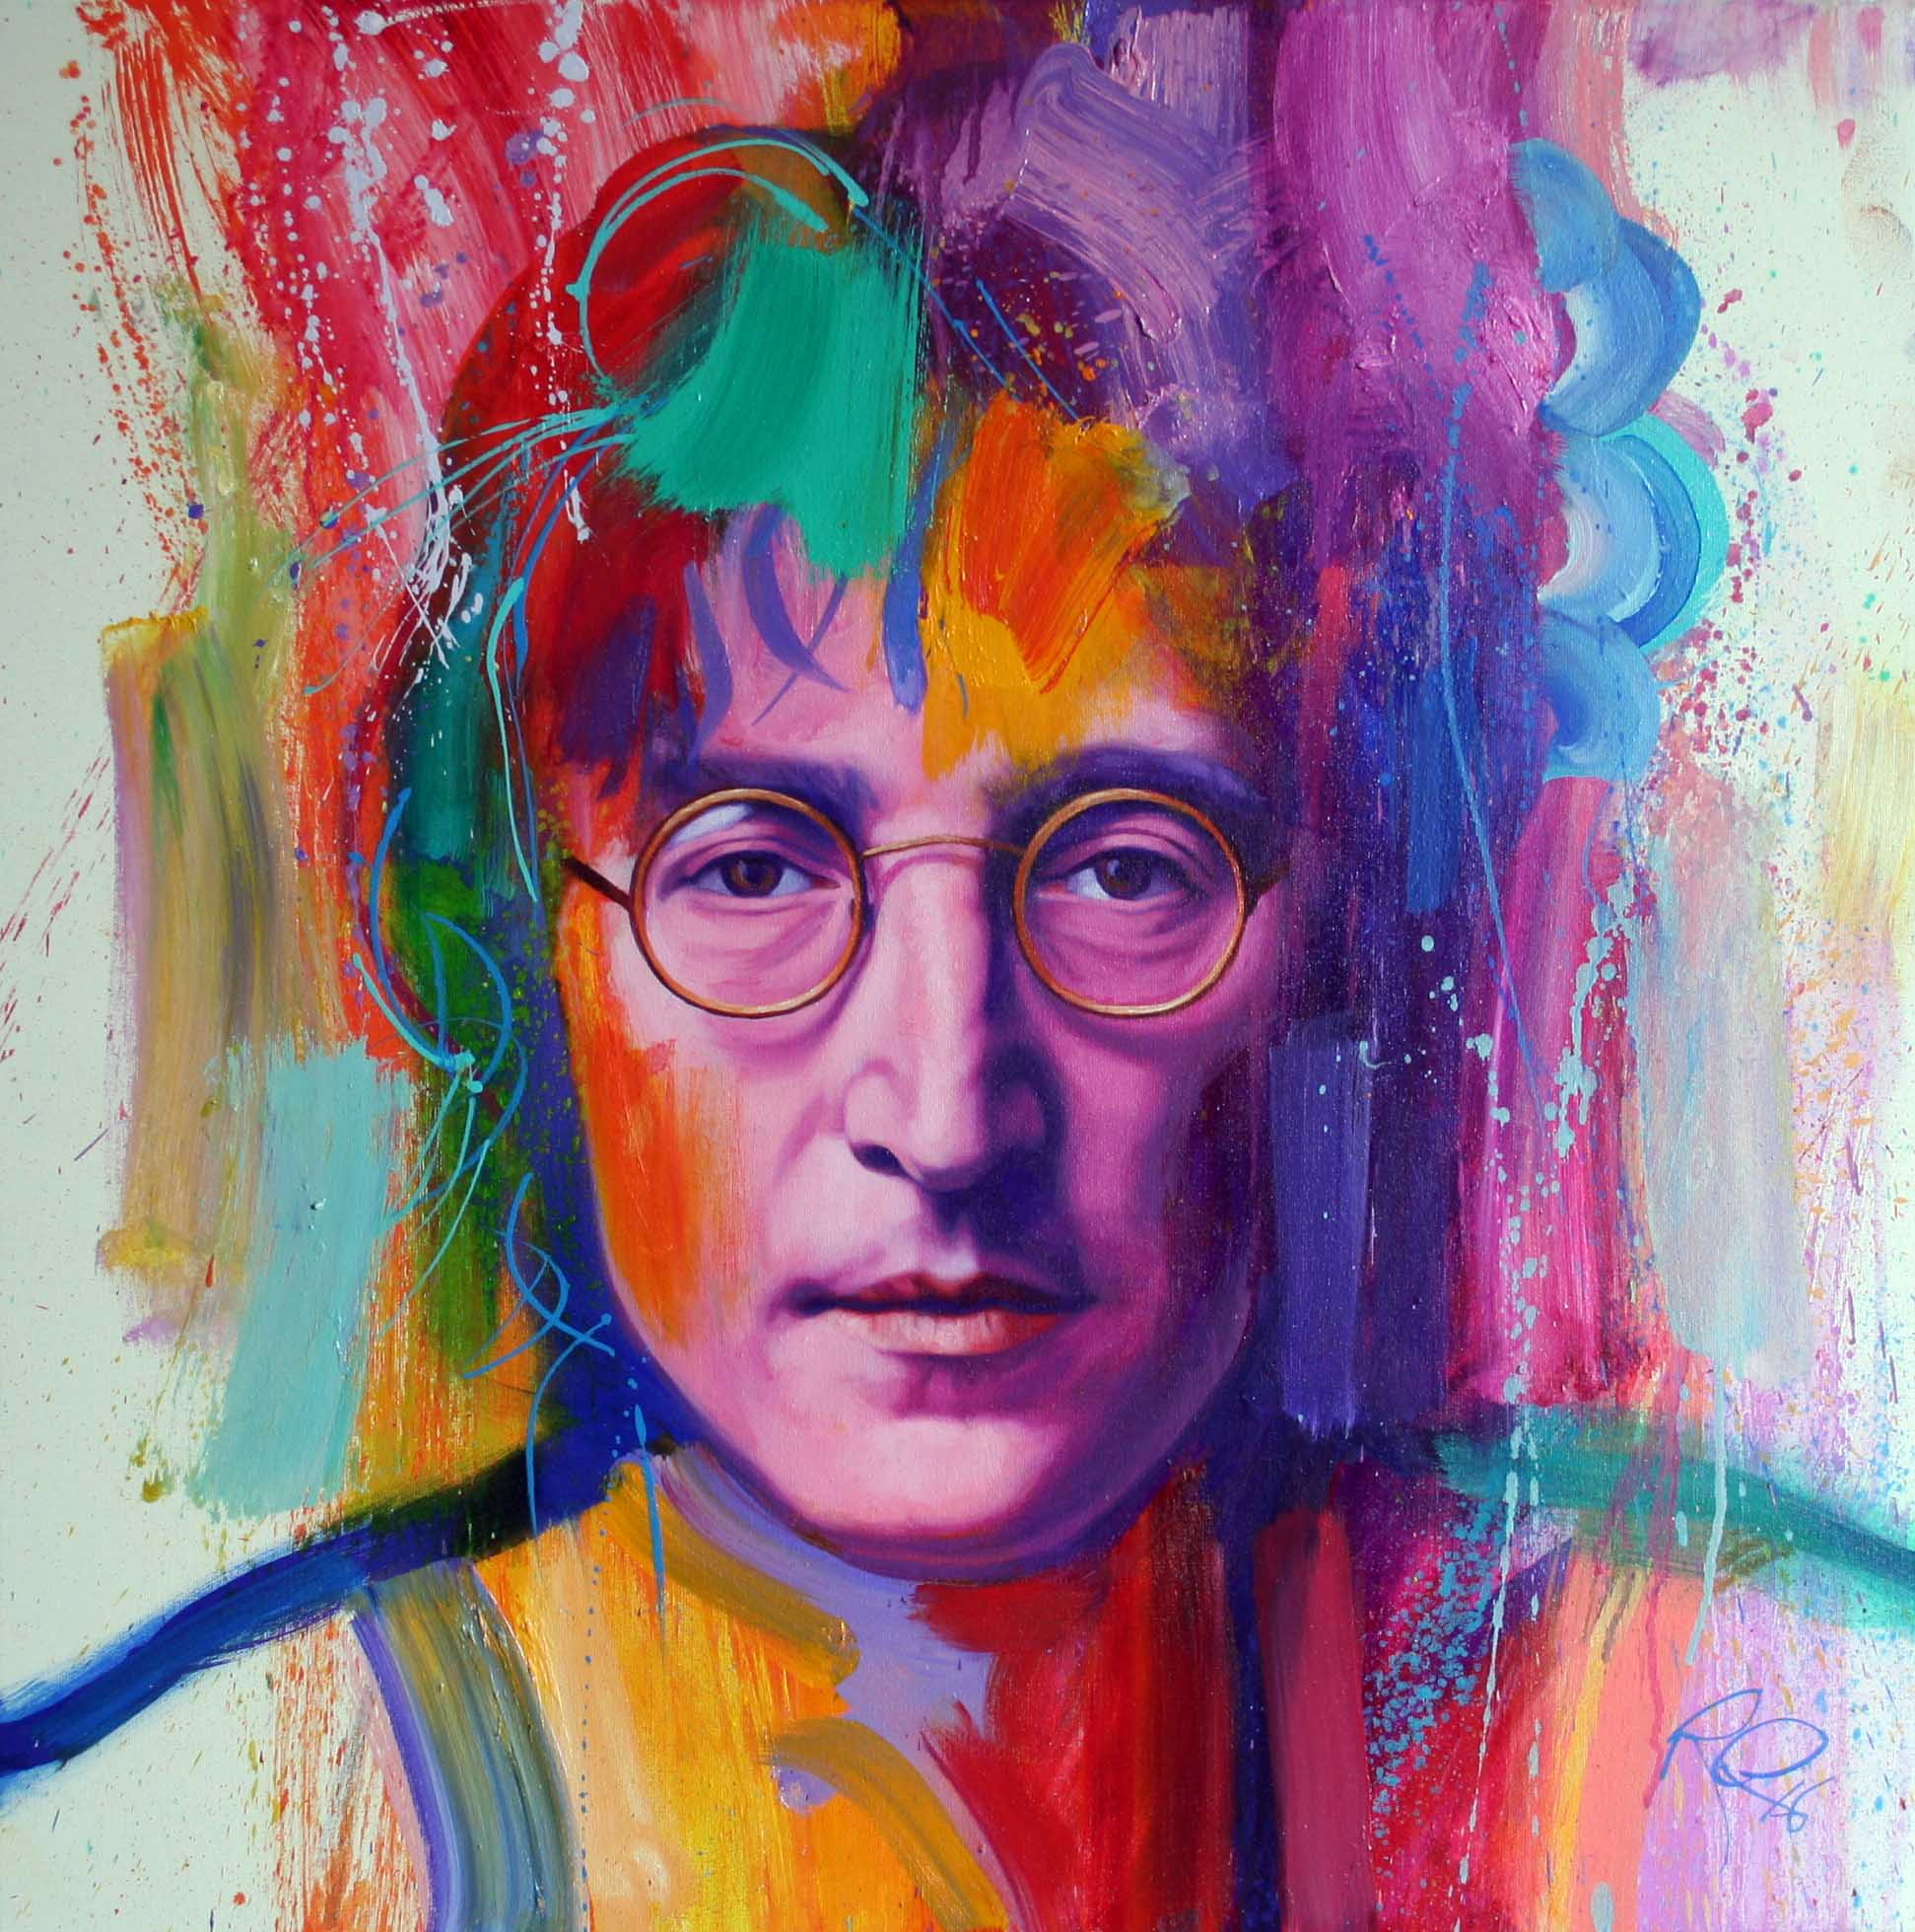 'John'    Original Work now Sold.  Available as a Limited Edition Print on Canvas. Hand signed and numbered by the artist.